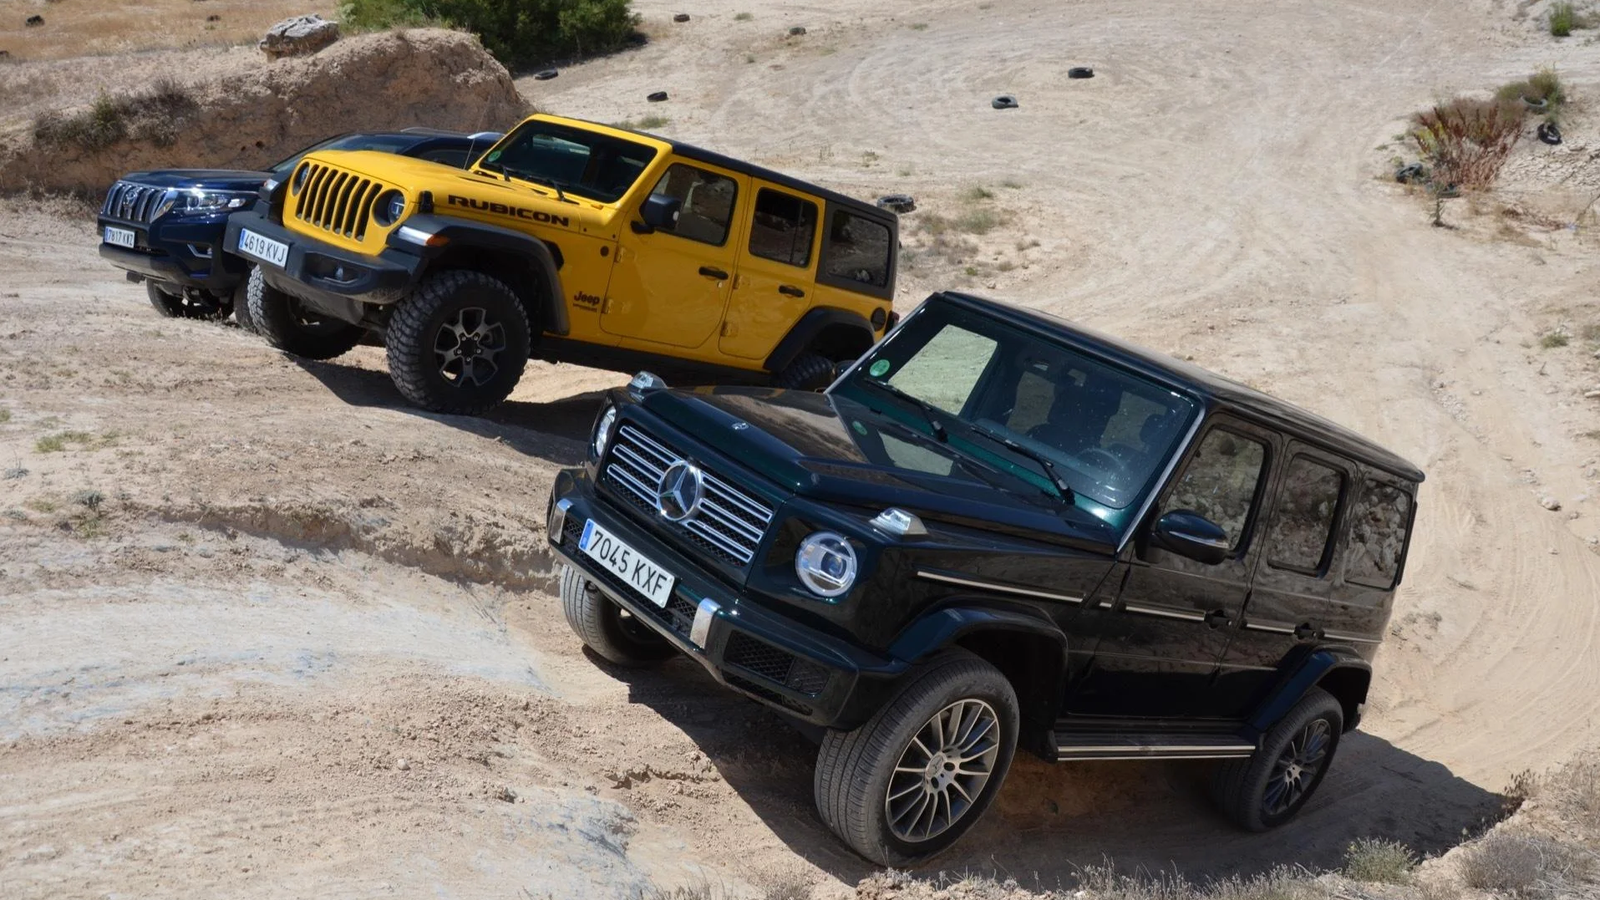 Watch A Jeep Wrangler Lose An Off-Road Comparison To A Mercedes G-Class And Toyota Land Cruiser